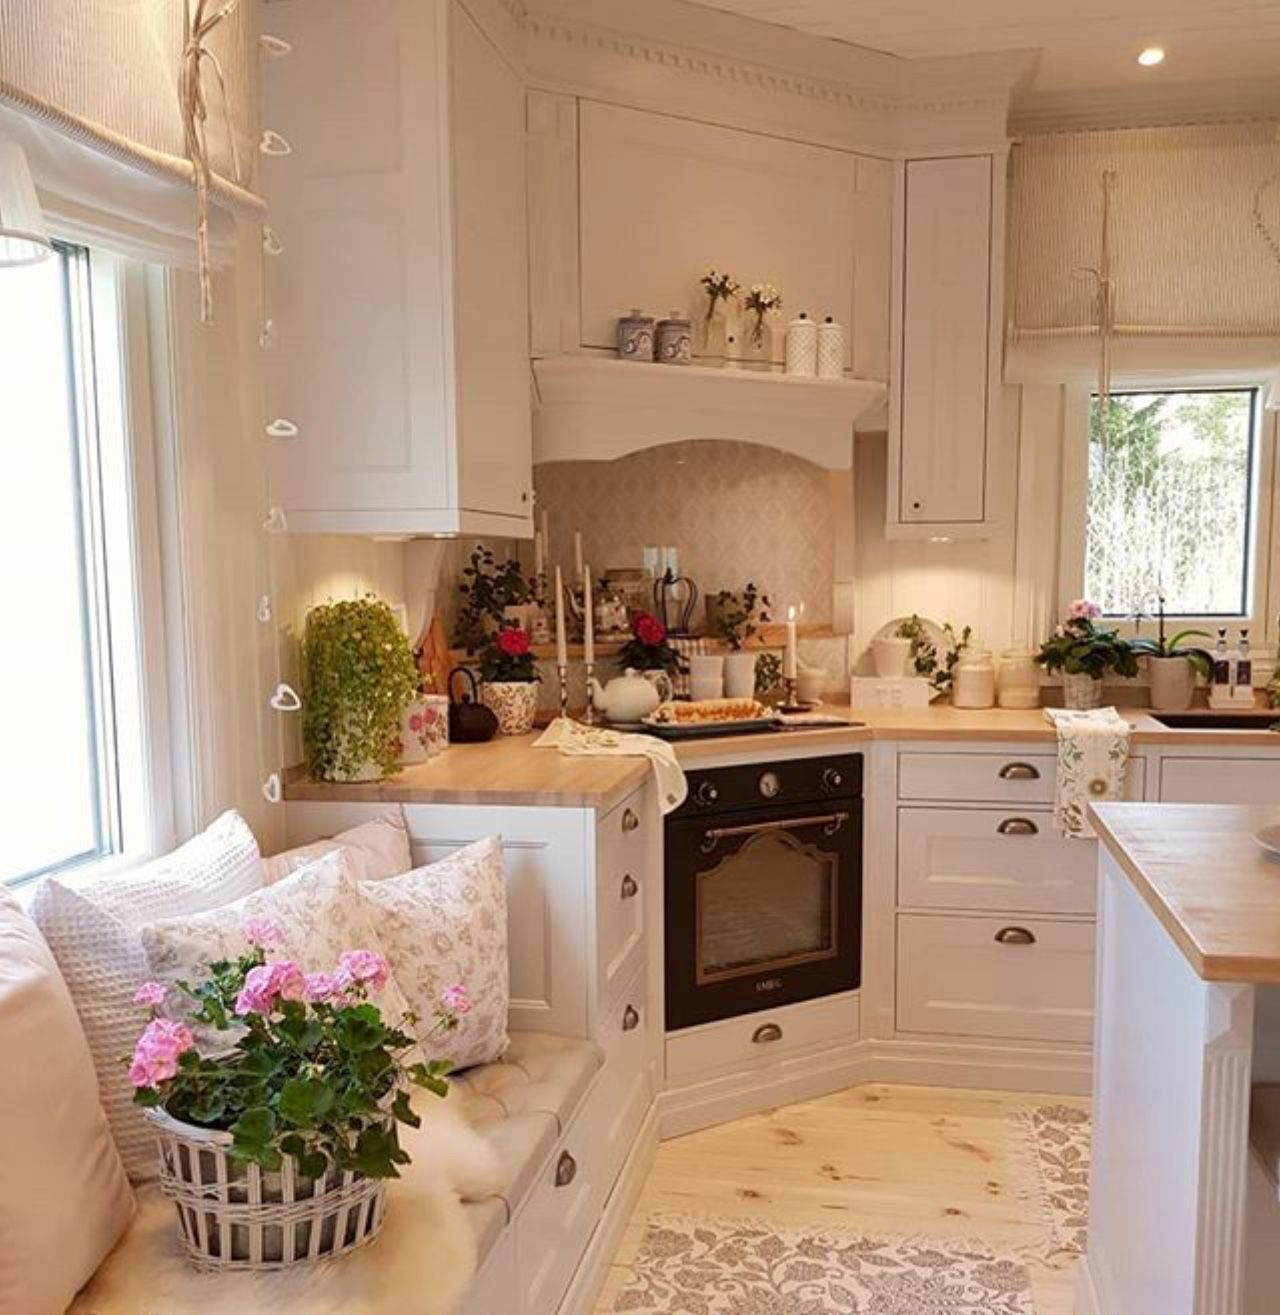 Pin by Lilibeth Hennessy on home decor | Home kitchens ...